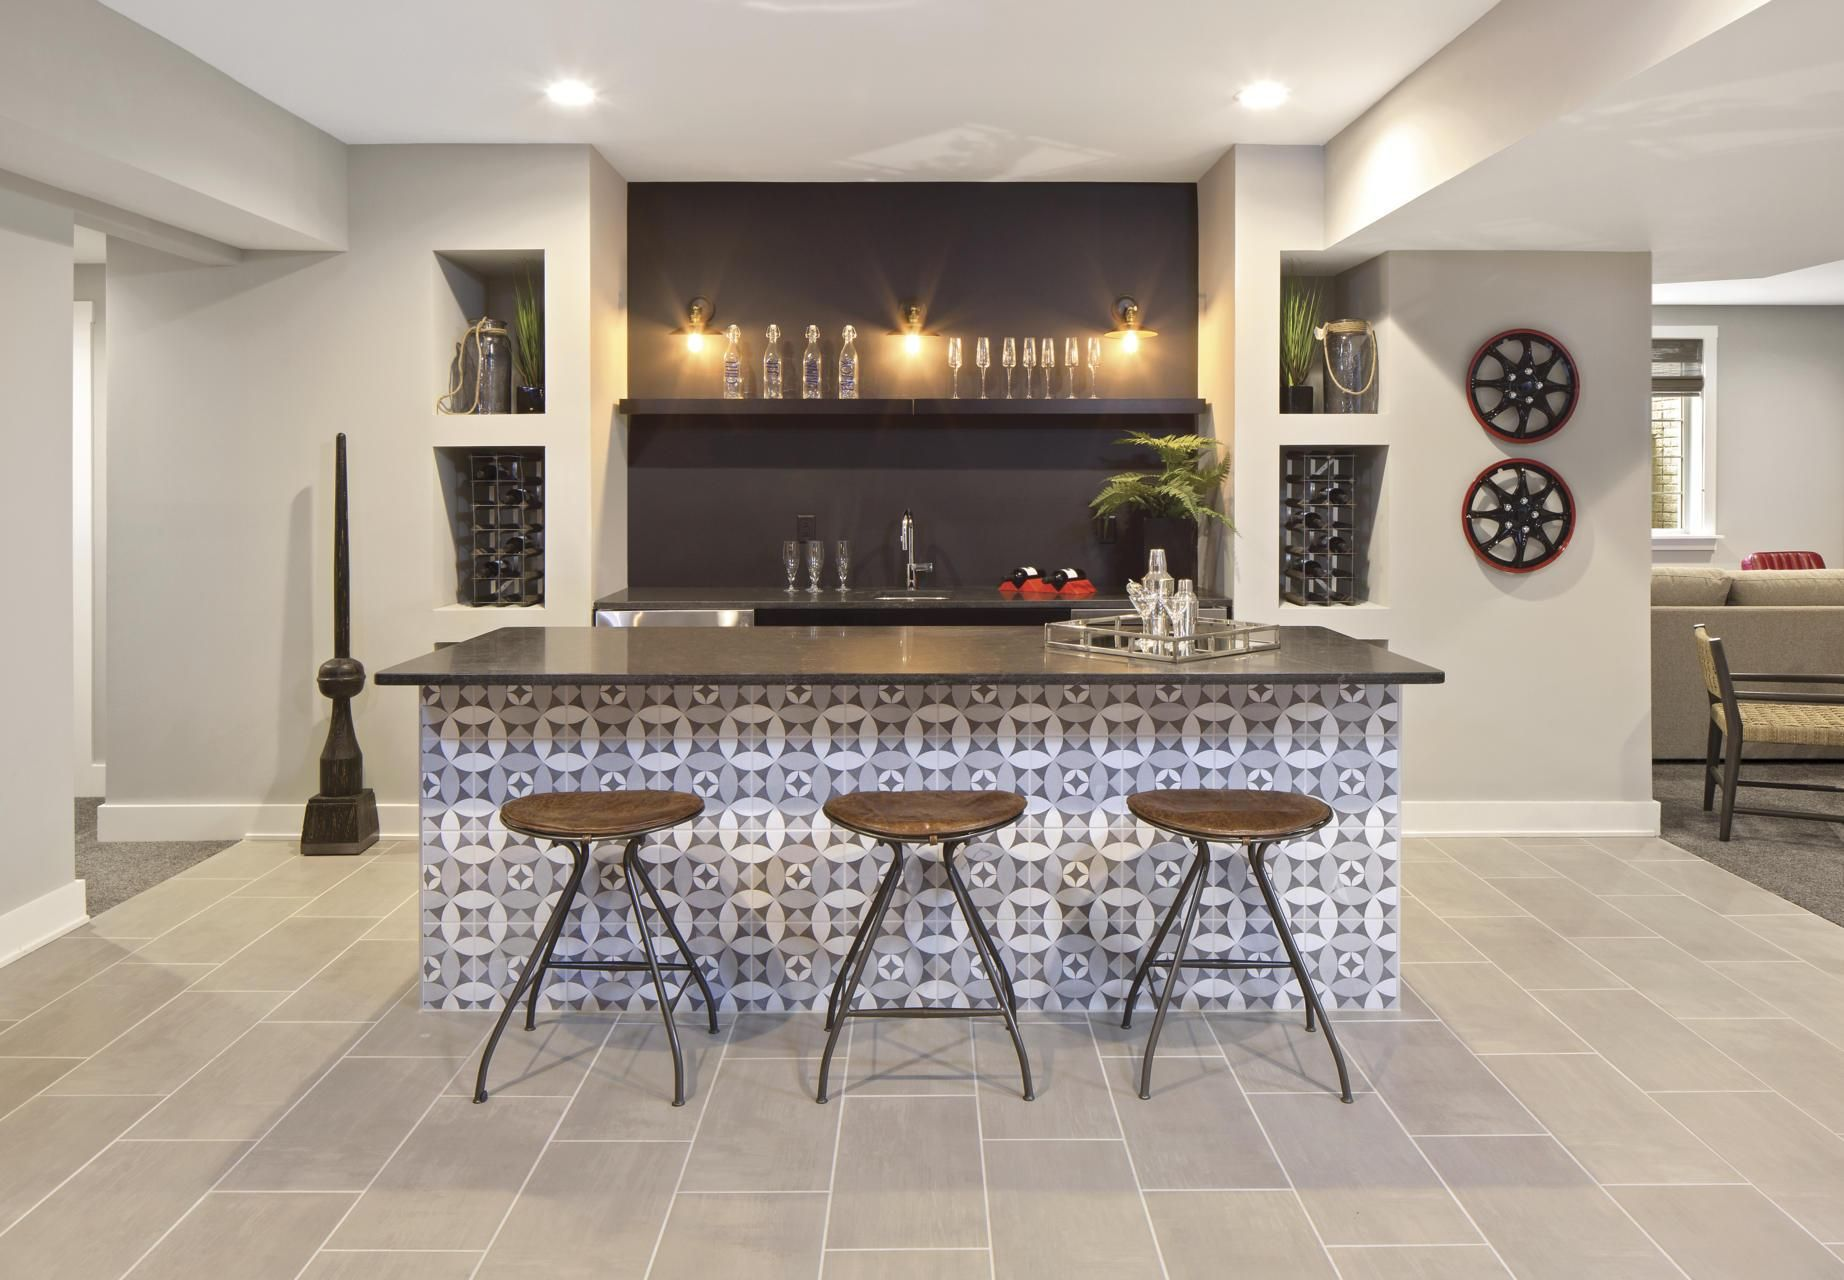 Wet Bar With Cabinets And Island Seating In Finished Basement Bars For Home Home Spacious Kitchens